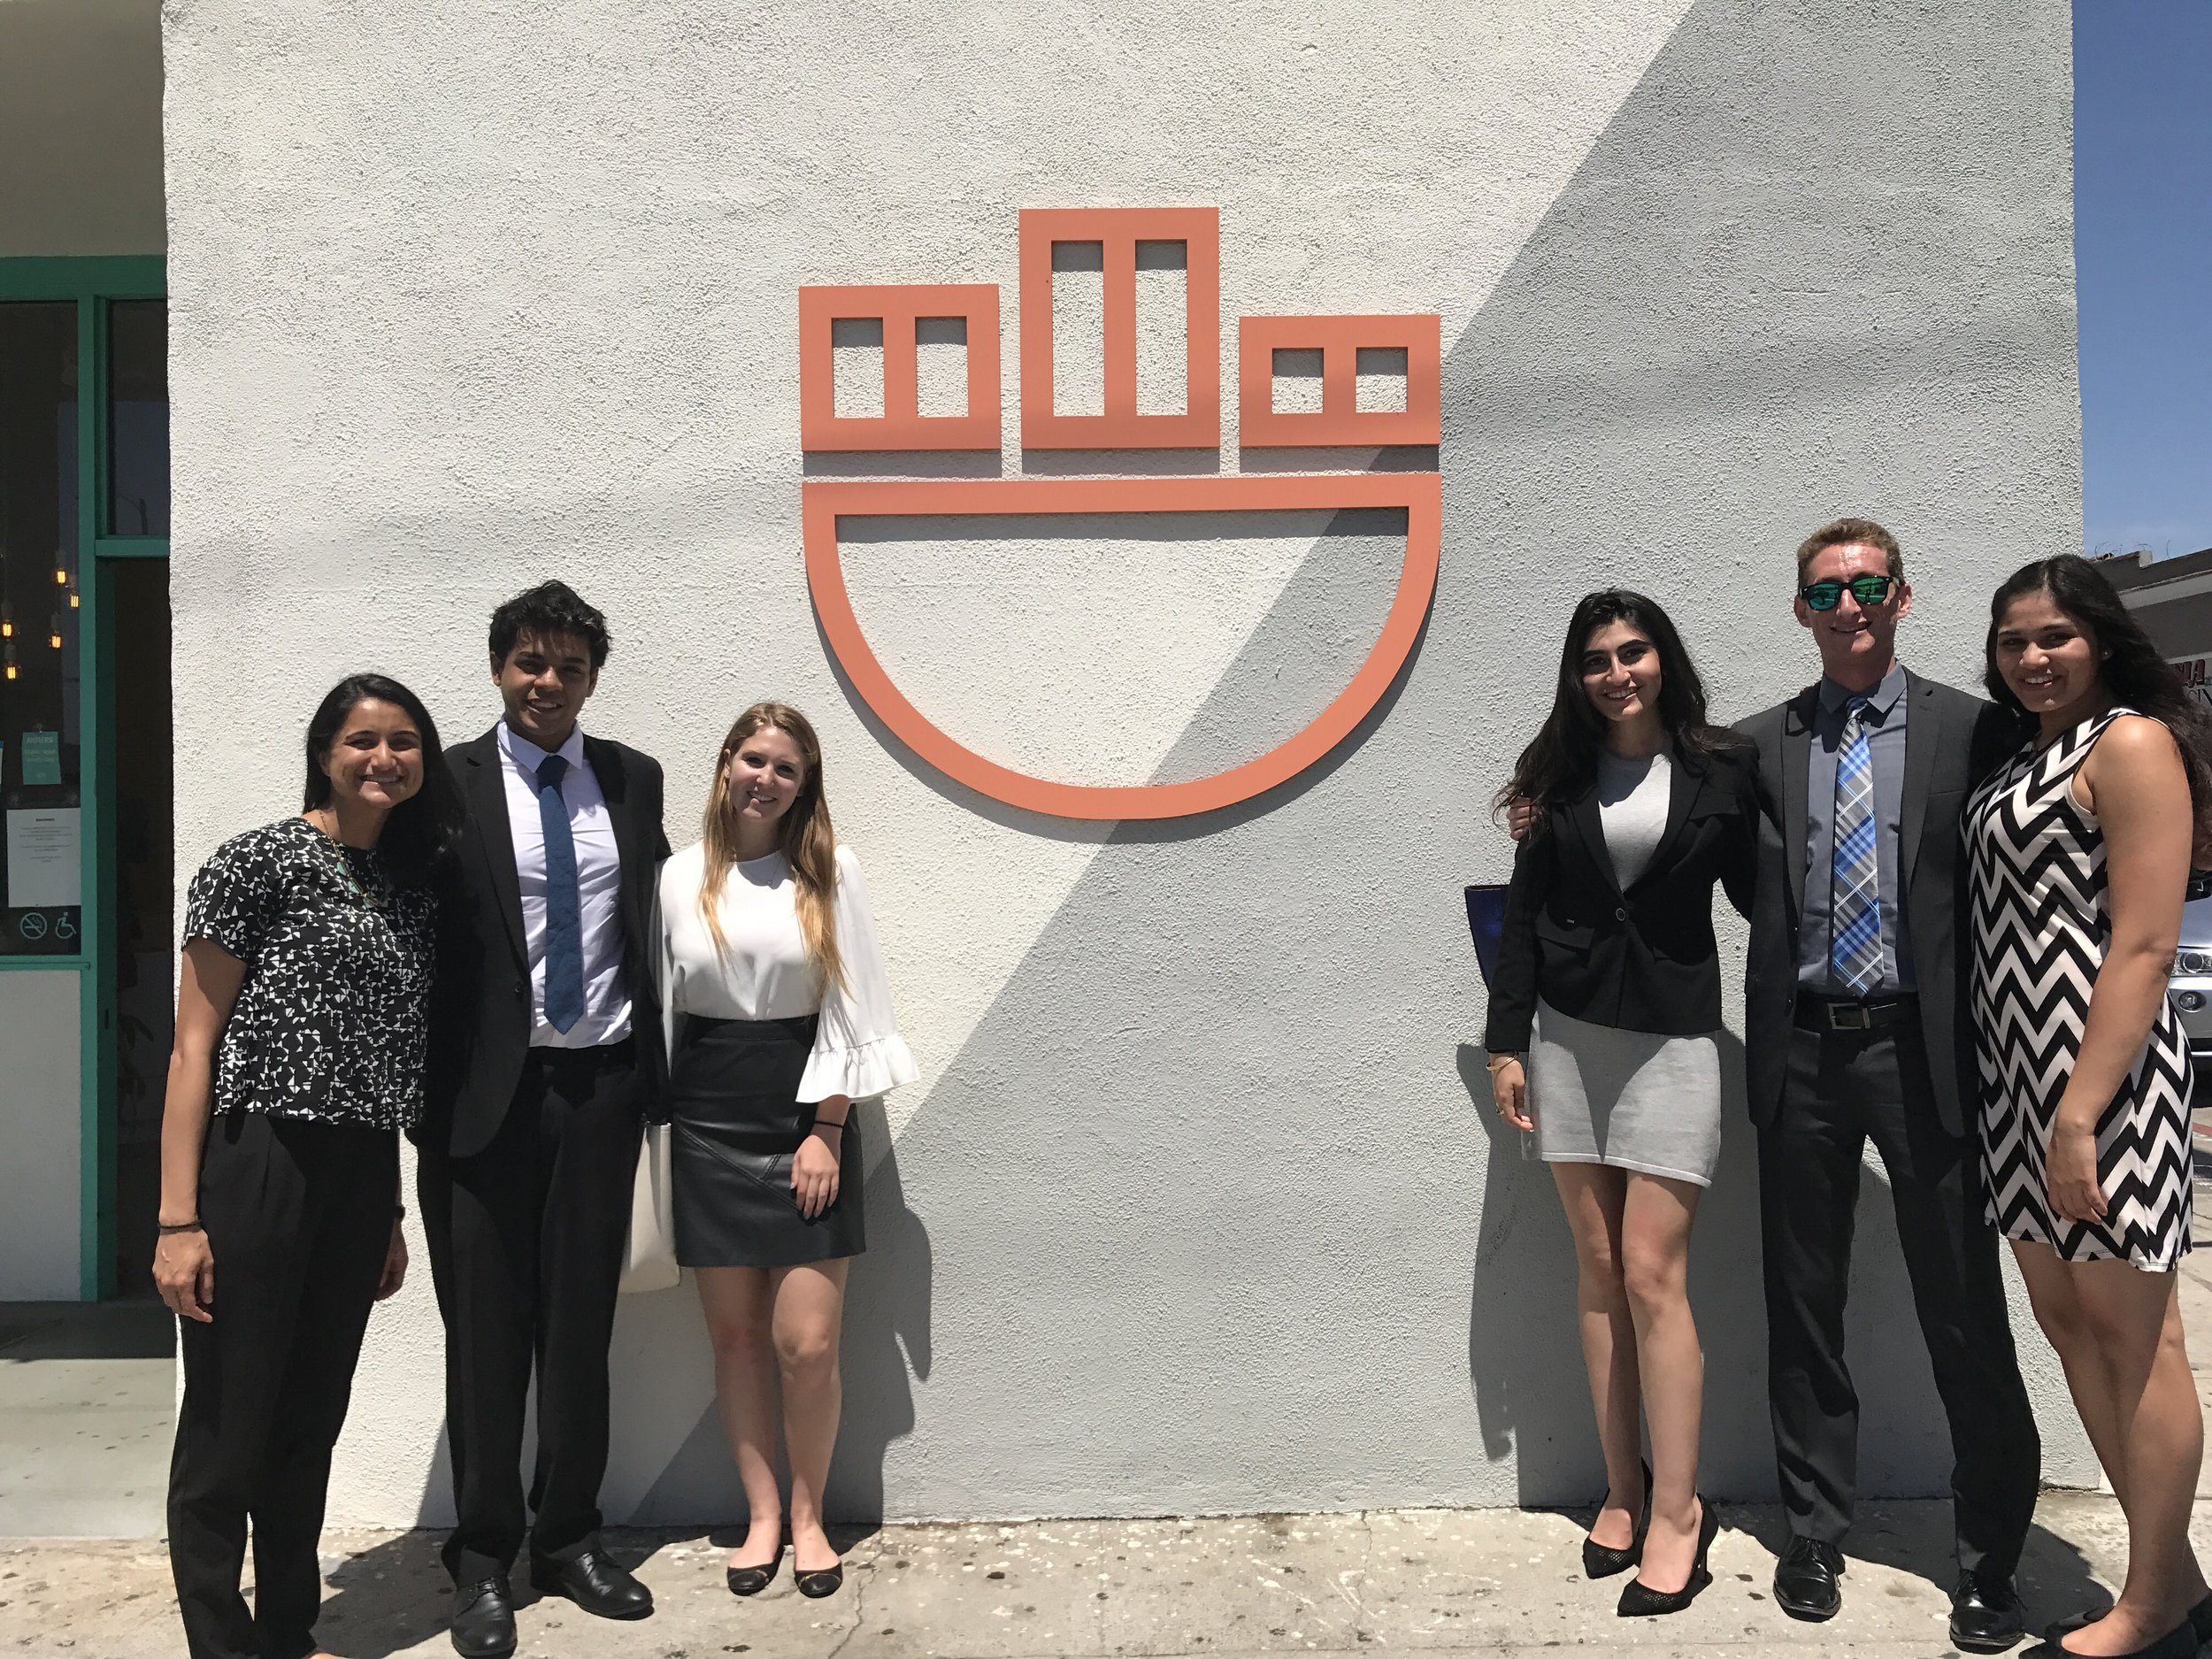 Consultants traveled to Everytable to discuss their final findings and recommendations. (L-R: Everytable representative, Anchit Kher, Sarah Cherry, Melody Mohammadi, Baron Wilton, Yashashree Pisolkar).